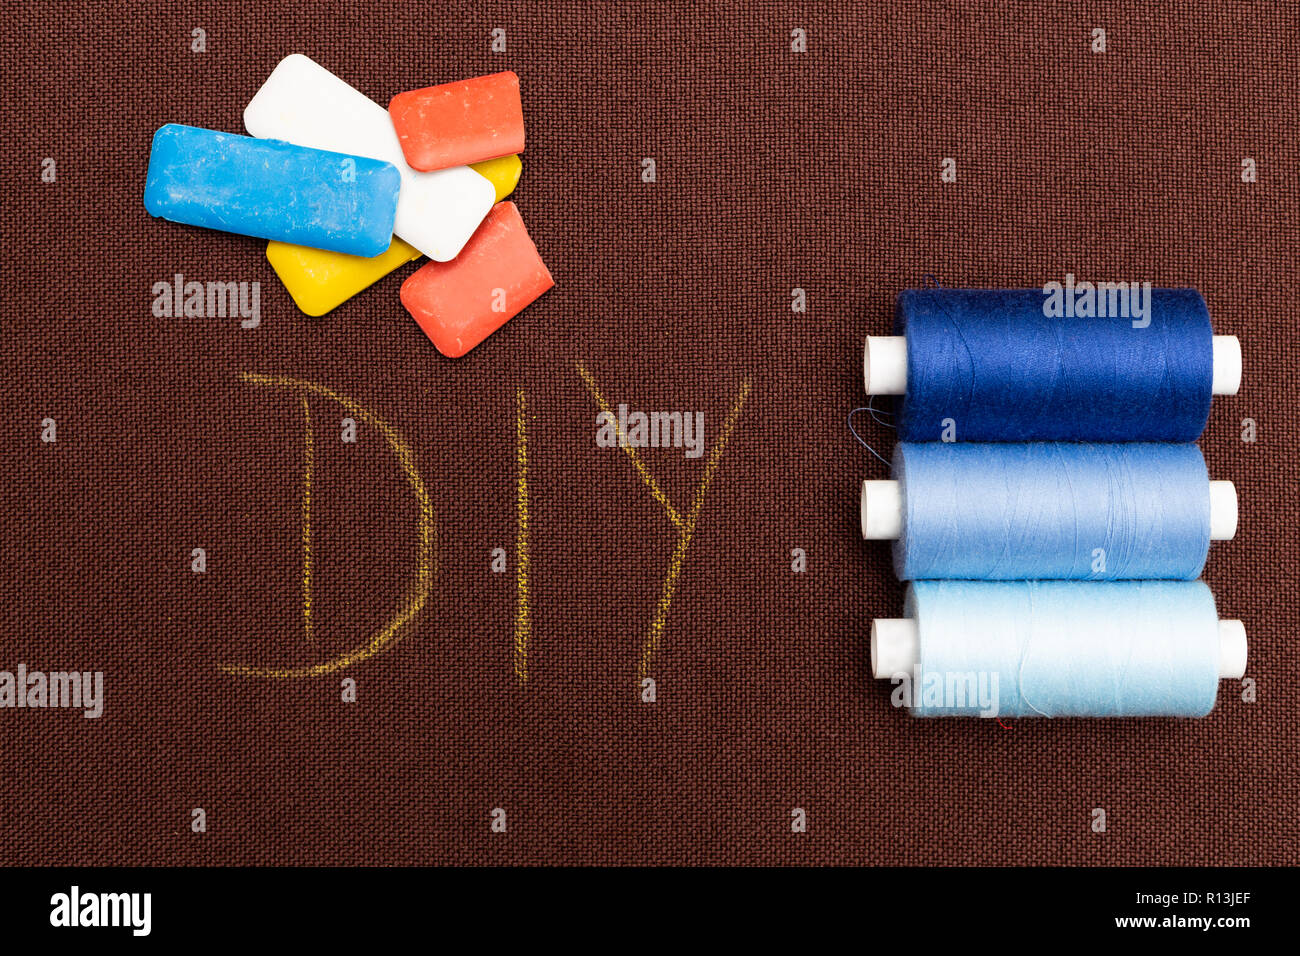 Brown material DIY as do it yourself concept written on it with coloured chalk and shades of blue thread spools nearby Stock Photo